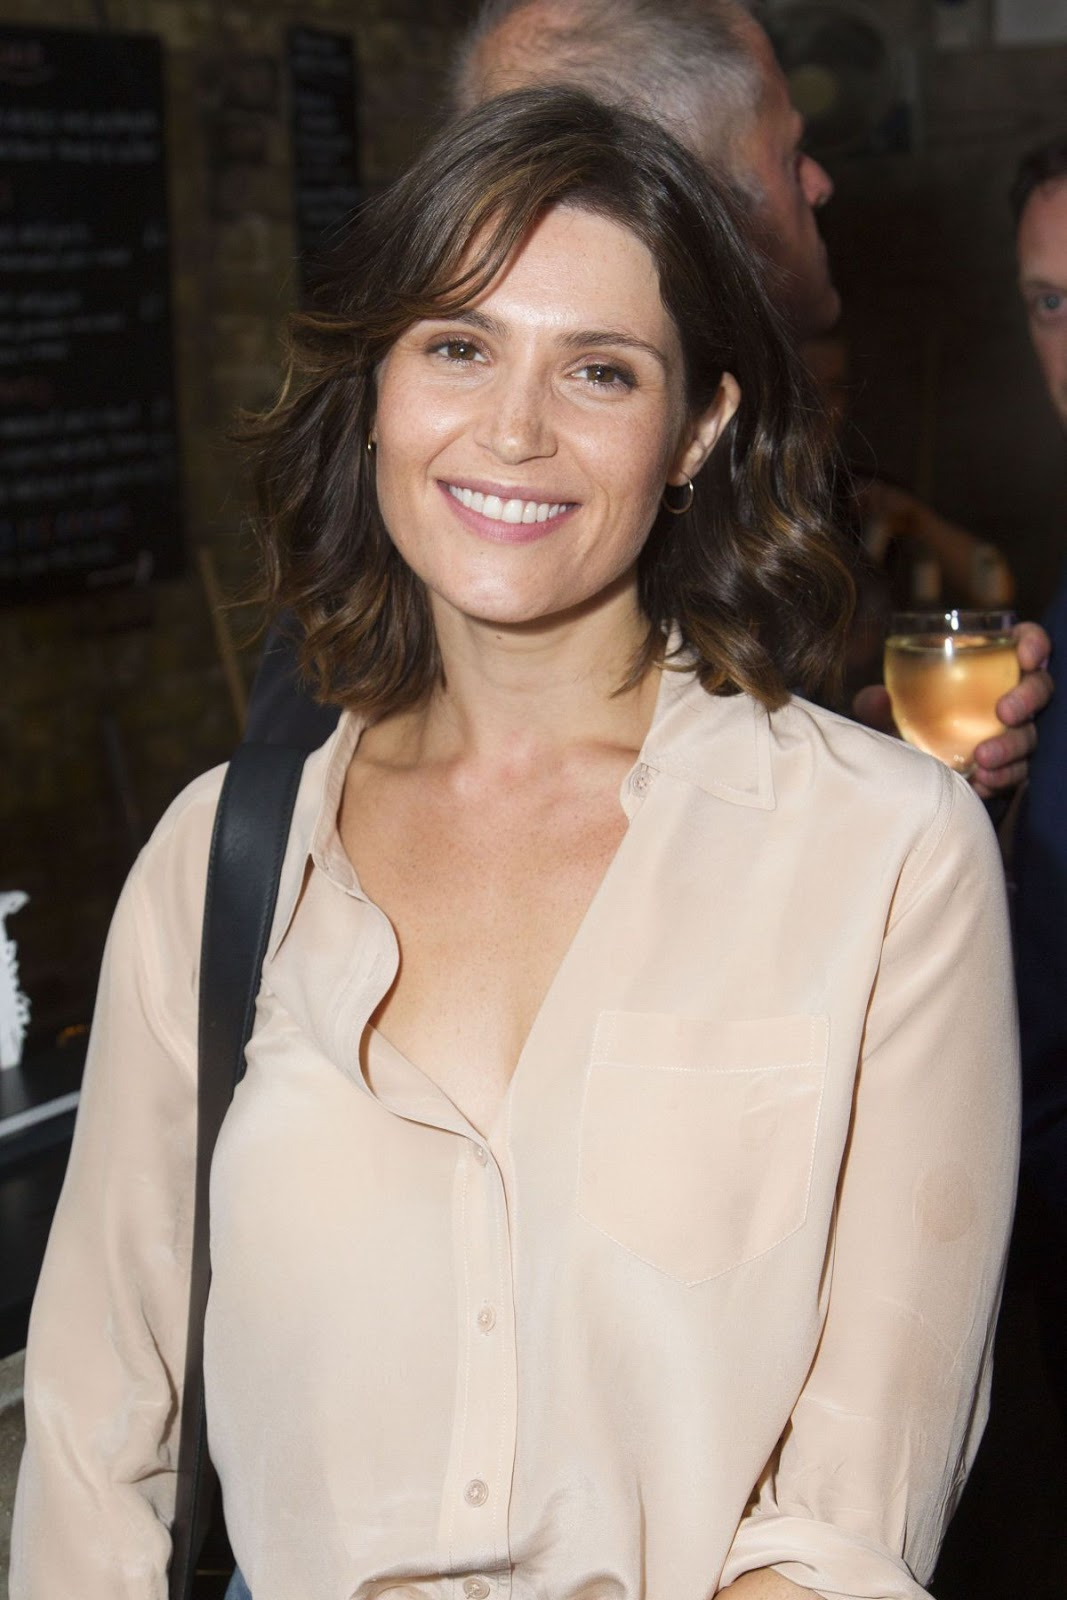 Gemma Arterton At Richard III Press Night In London